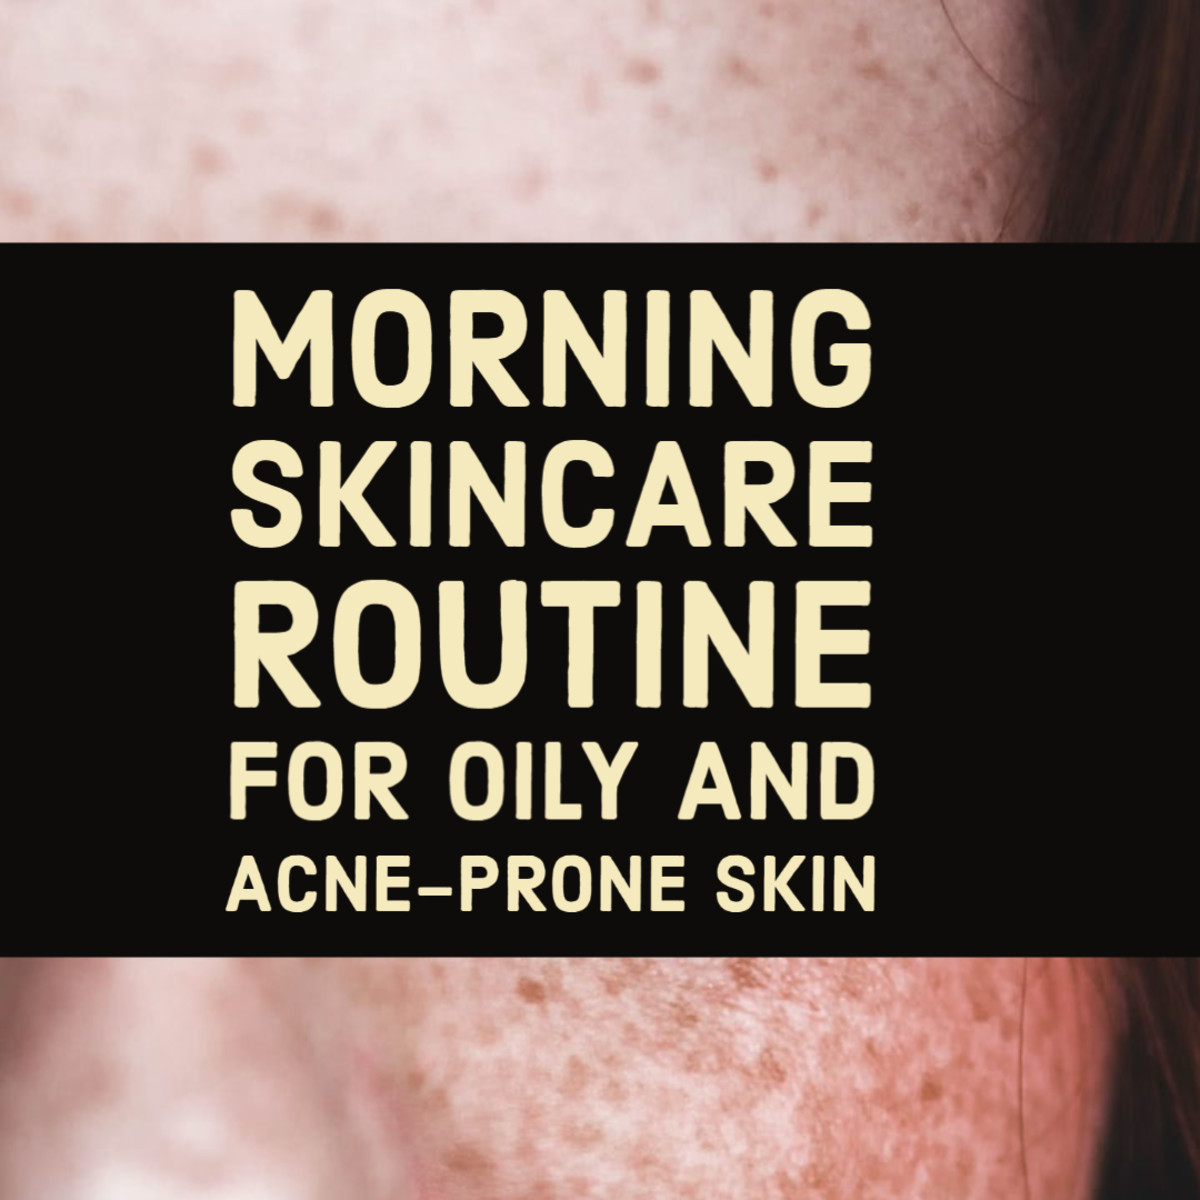 Morning Skincare Routine for Oily and Acne-Prone Skin.